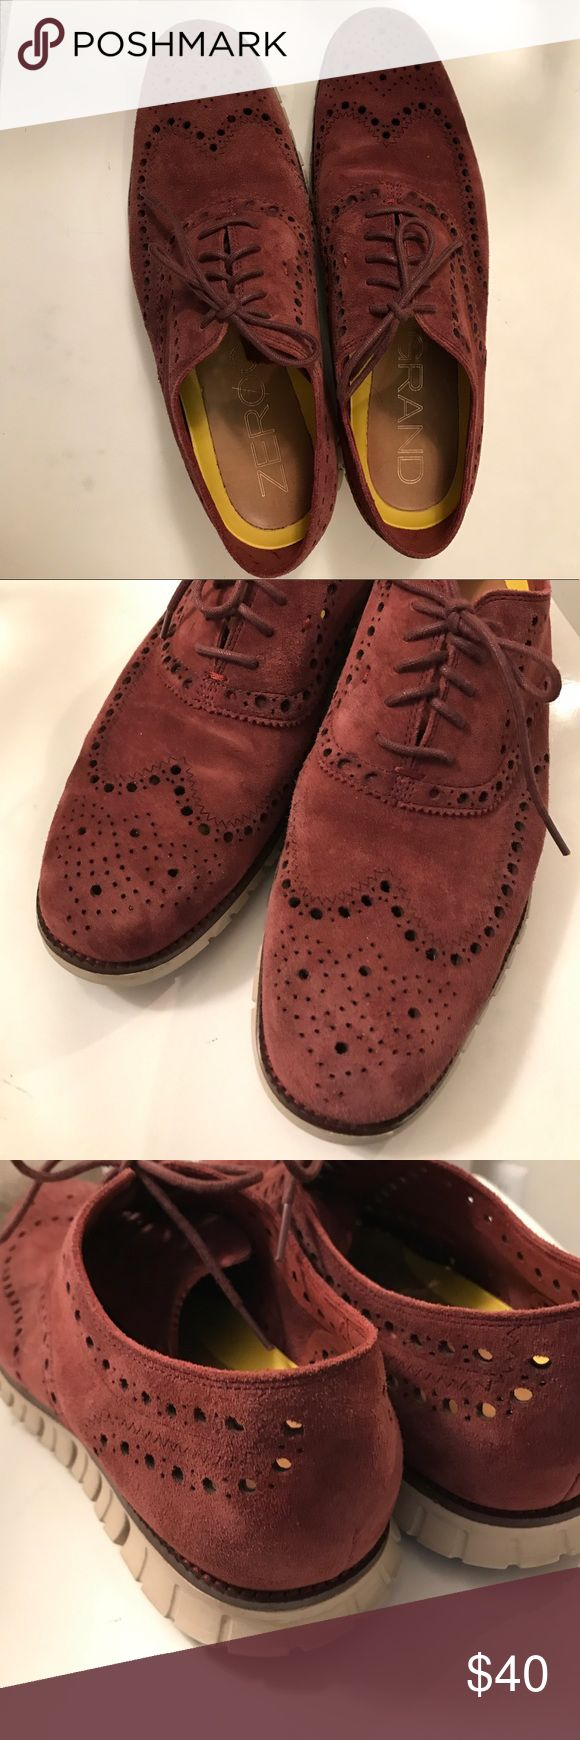 Cole Han Grand.OS Zero Grand size 13 Worn a few time one season, great condition, very comfortable, soles show almost no wear Cole Haan Shoes